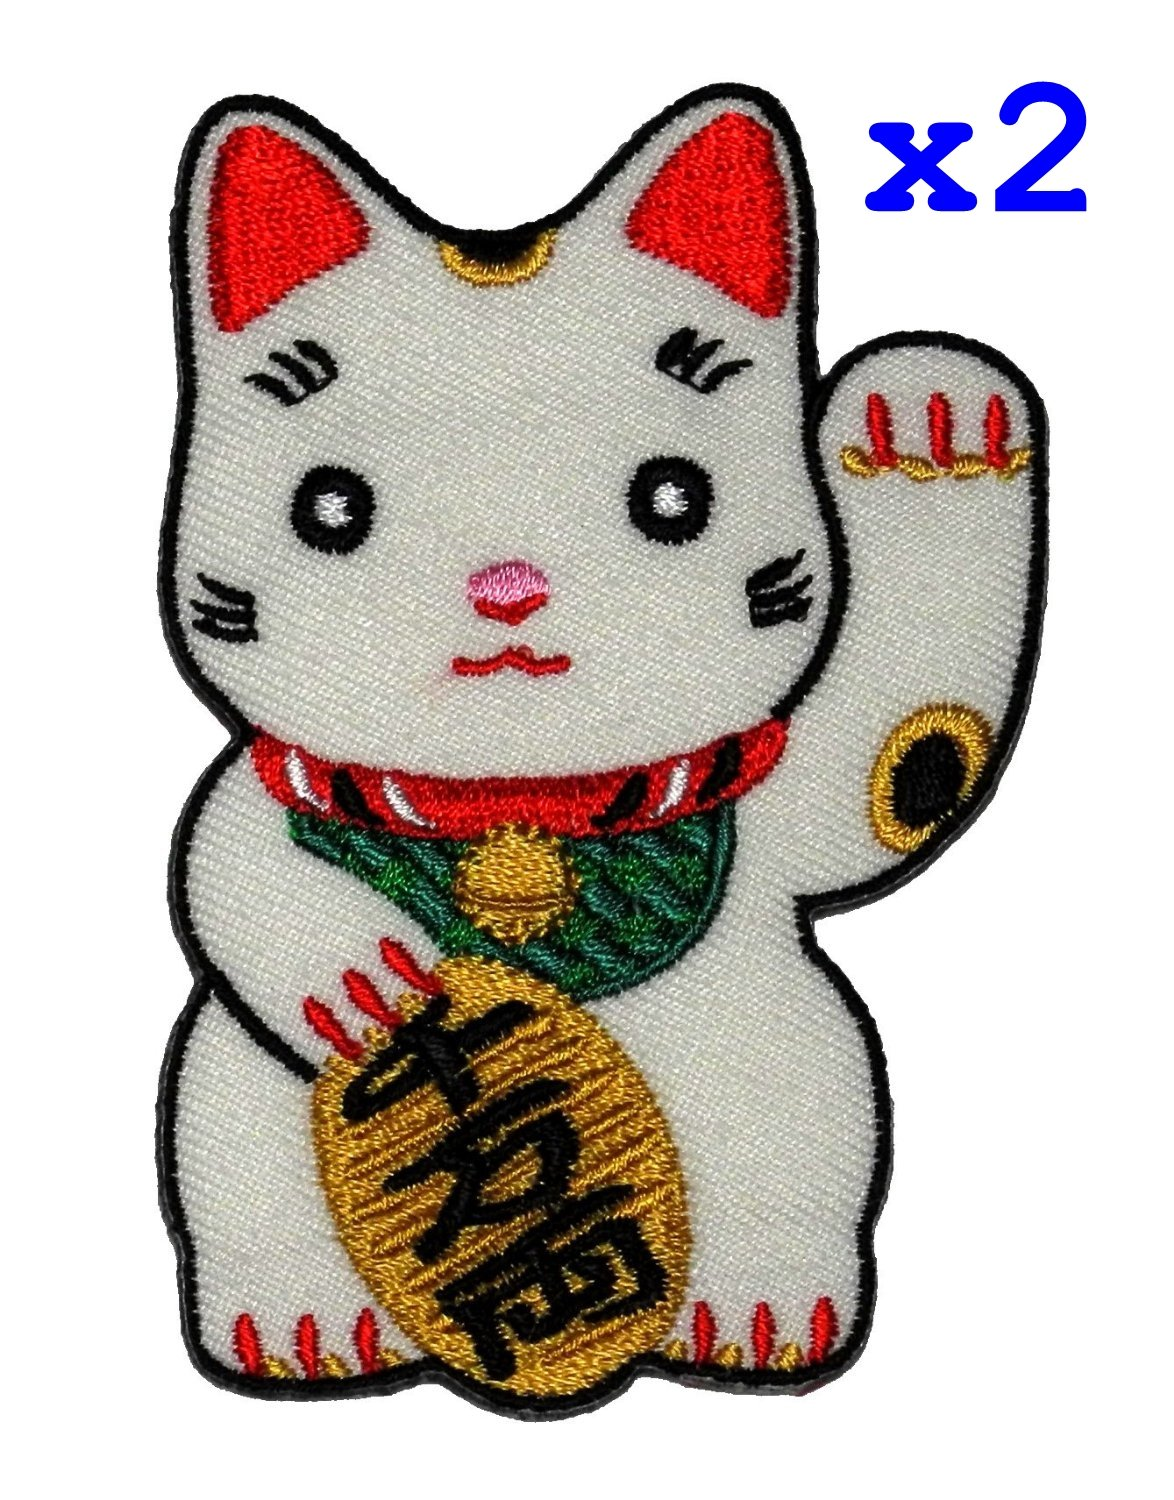 Cute Maneki-neko Japan Japanese Lucky Cat DIY Embroidered Sew Iron on Patch PA International Trading Co. Ltd 4337021550